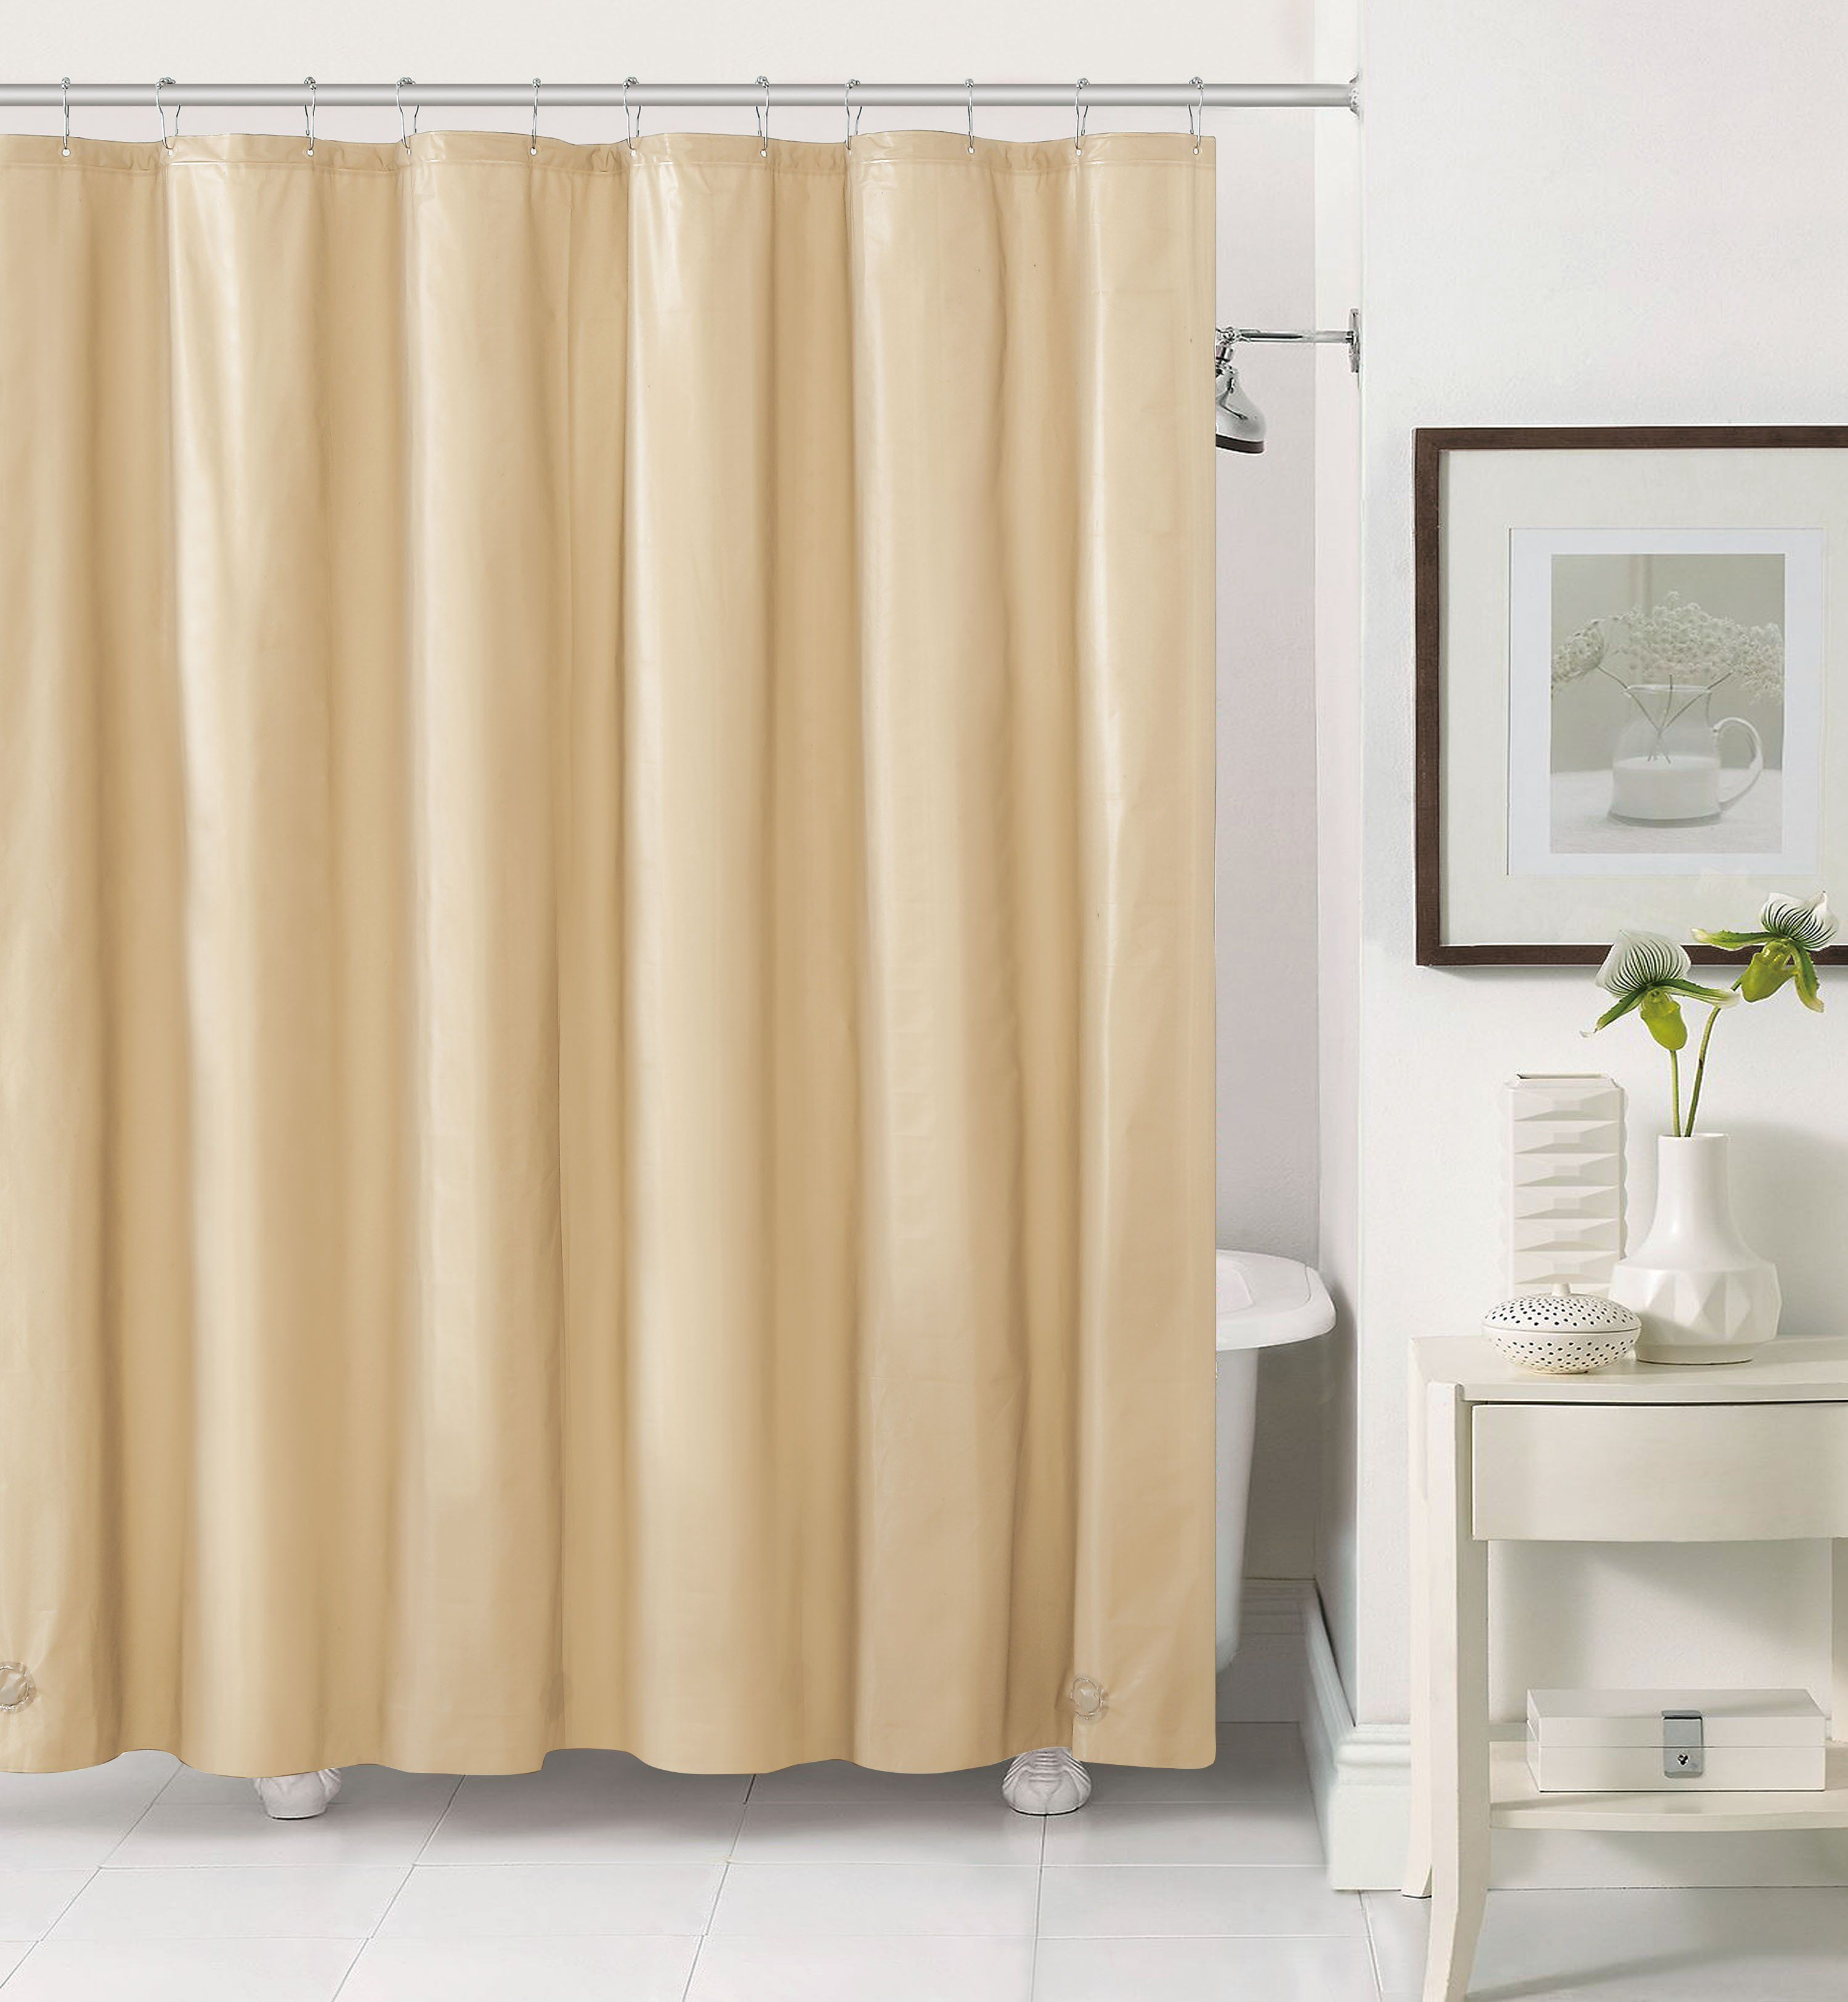 10 Gauge PEVA Non Toxic Shower Curtain 72 X With Magnets And Metal Grommets